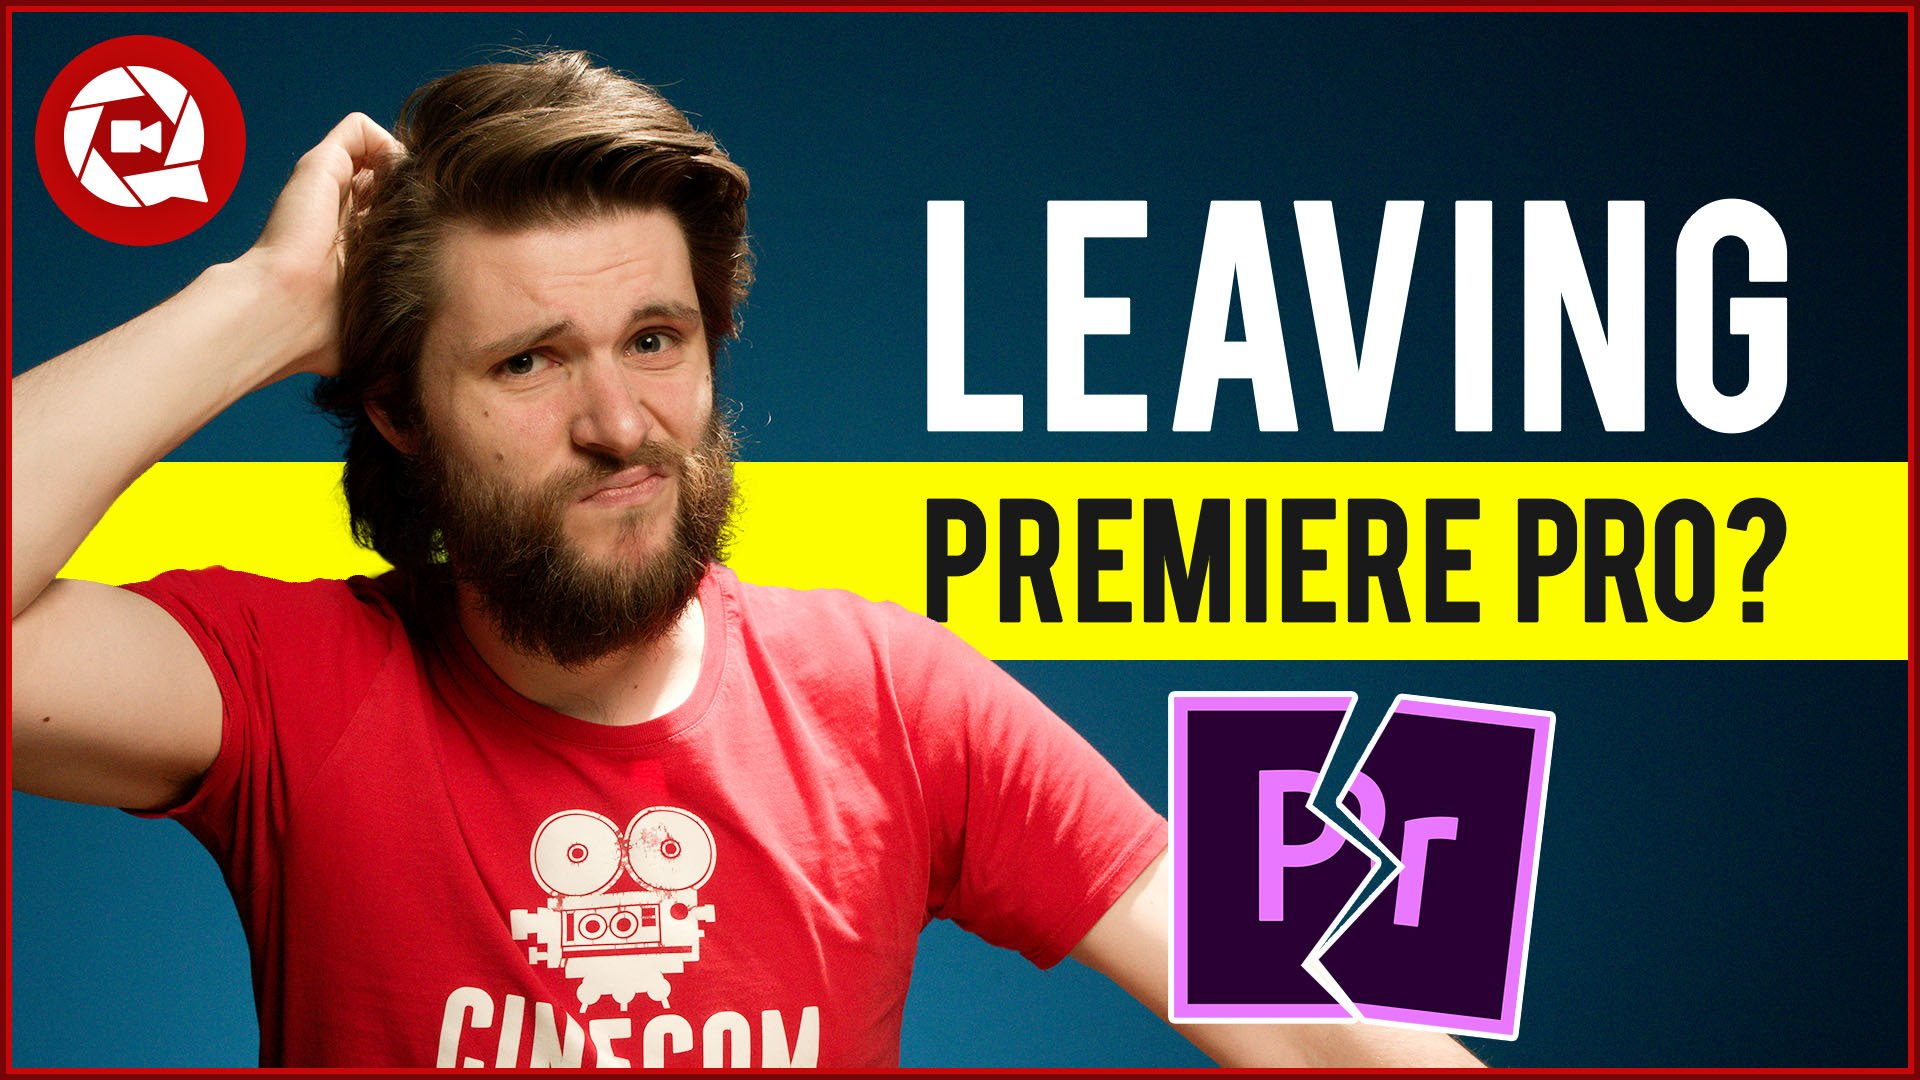 Time to leave Premiere Pro?